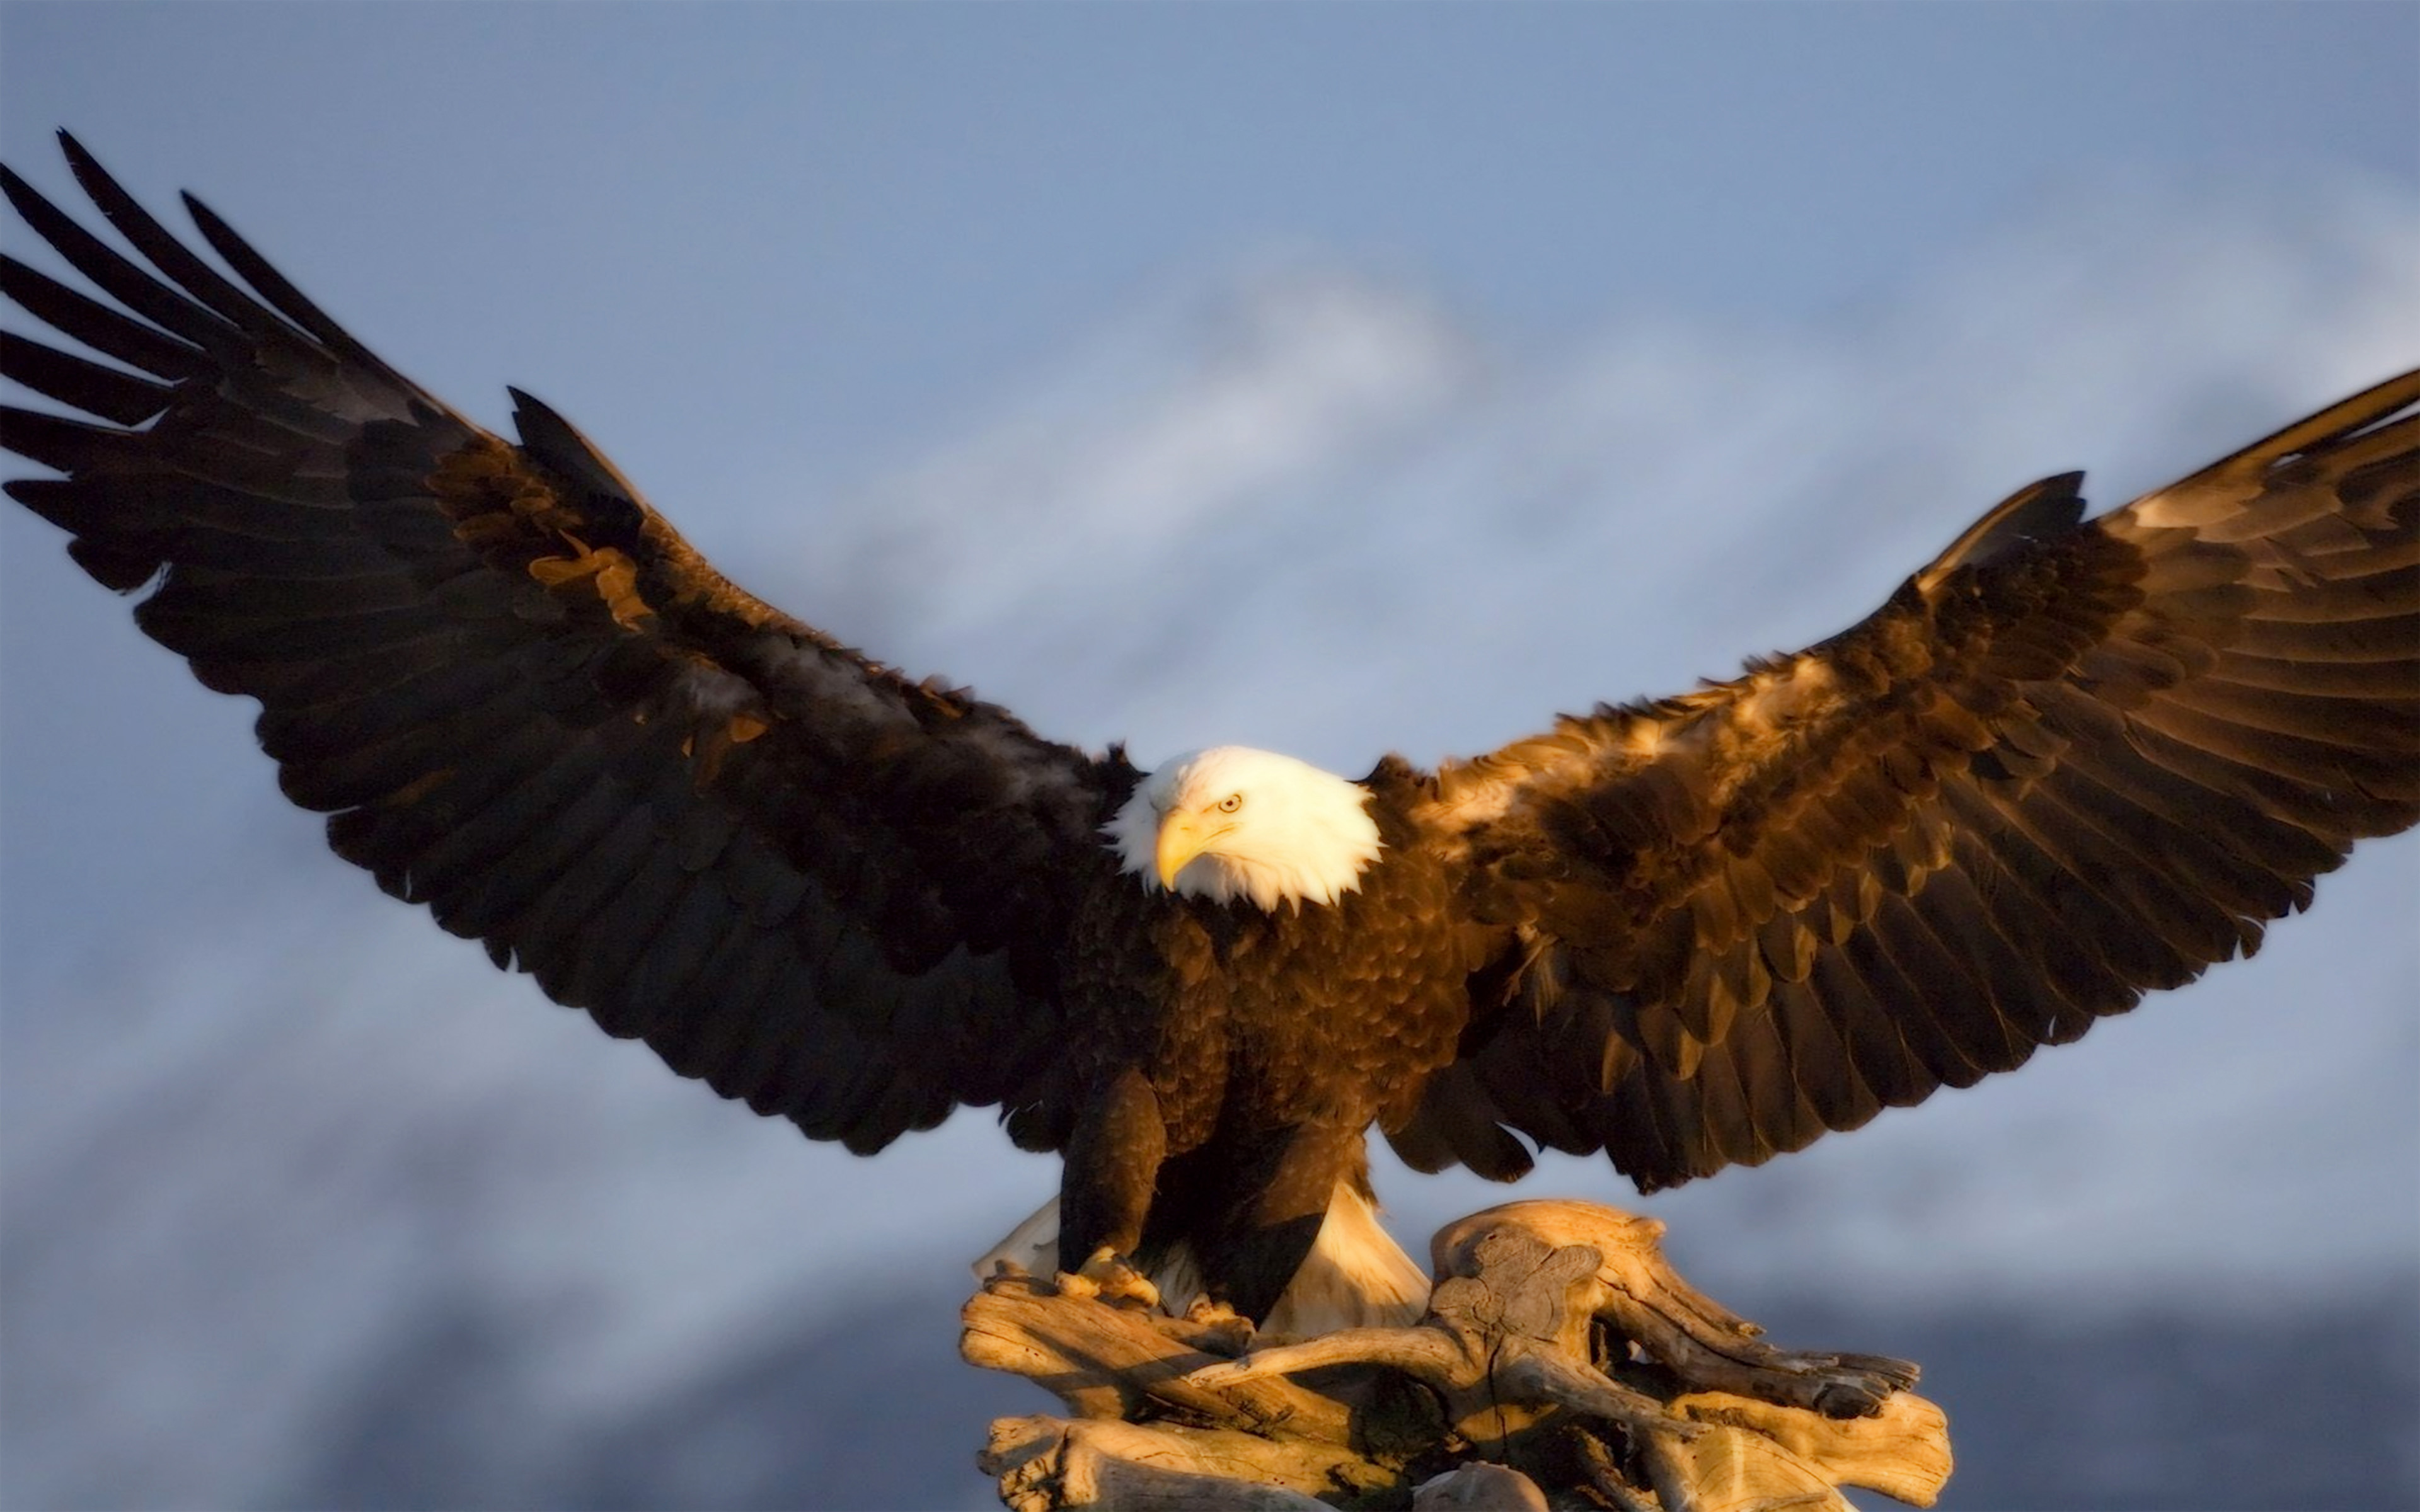 All White Iphone Wallpaper Bald Eagle Wingspan 5 9 7 5 Ft Hd Wallpaper Wallpapers13 Com